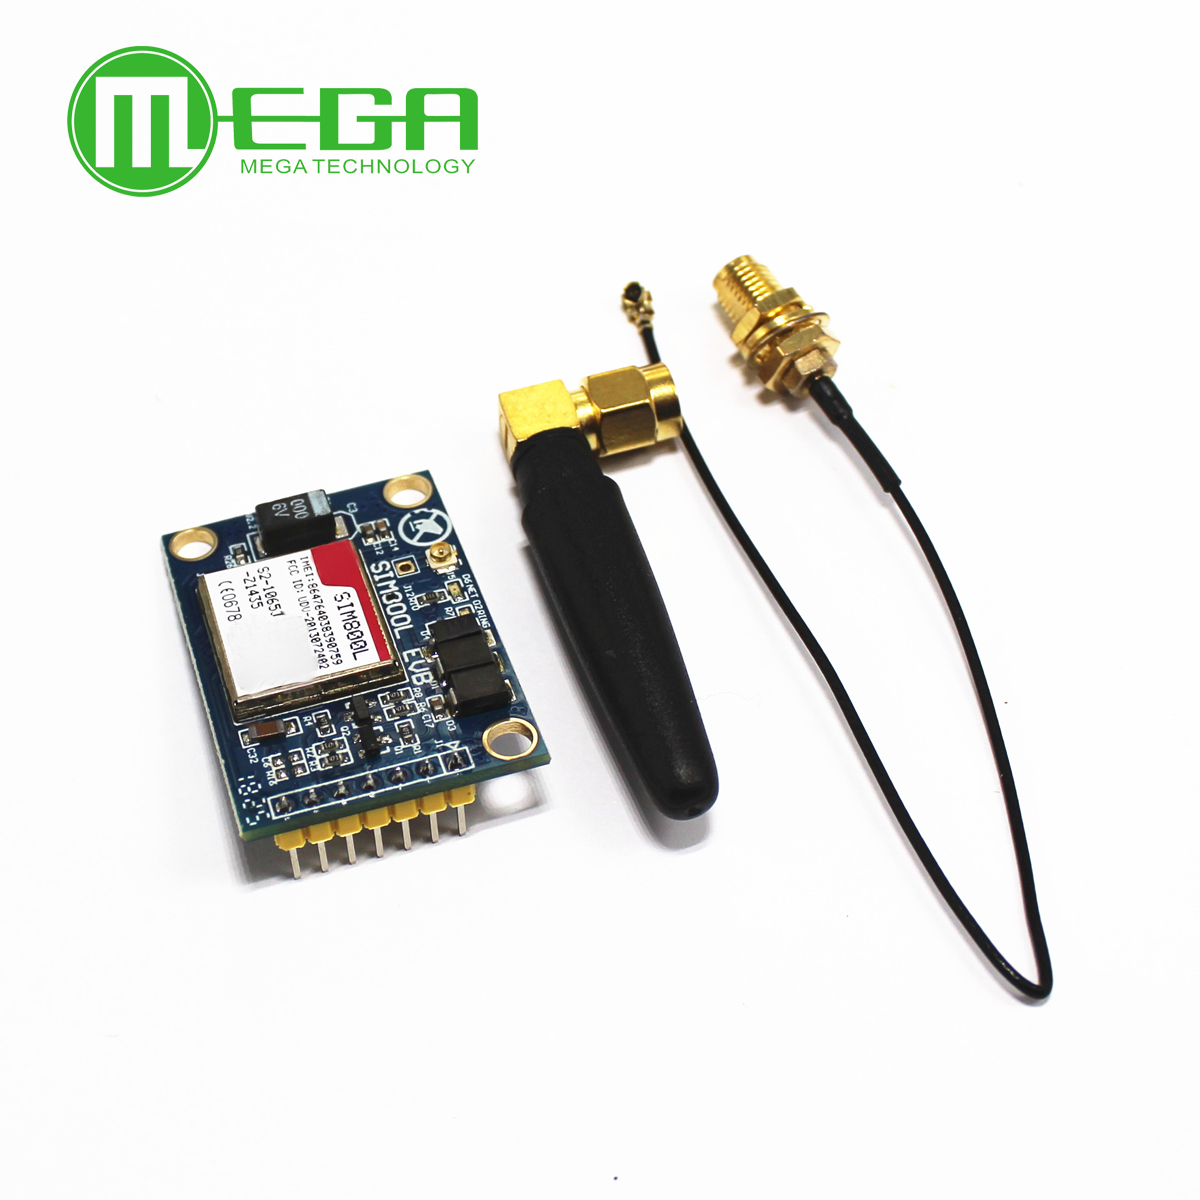 New SIM800L V2.0 <font><b>5V</b></font> Wireless GSM GPRS MODULE Quad-Band W/ Antenna Cable Cap image